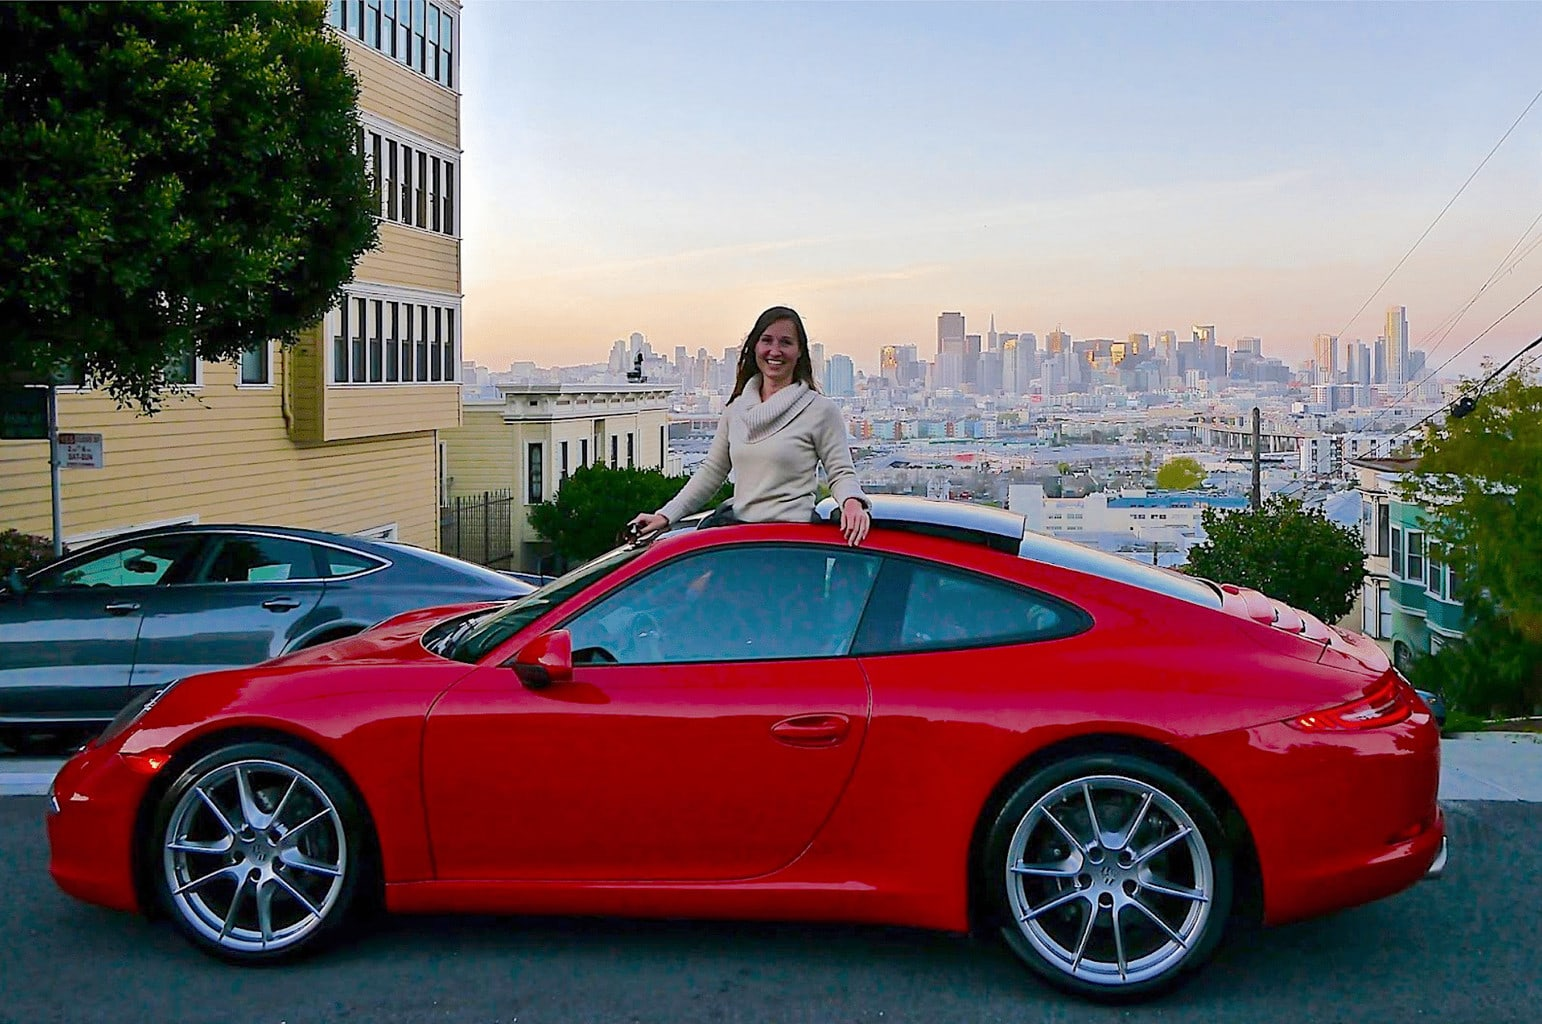 Me in my hot red Porsche